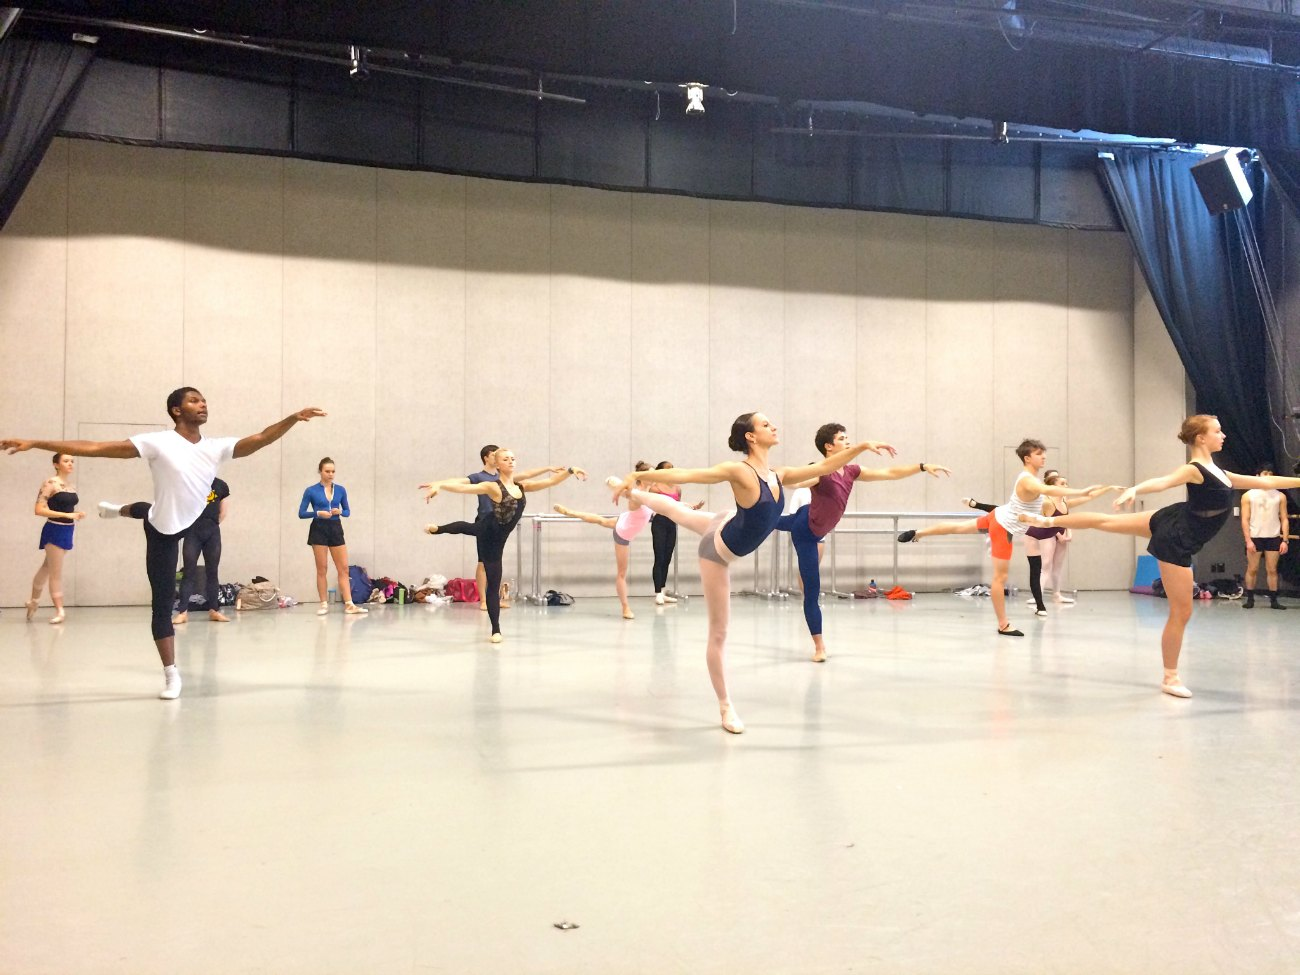 From costumes to choreography: Behind the scenes at Charlotte Ballet